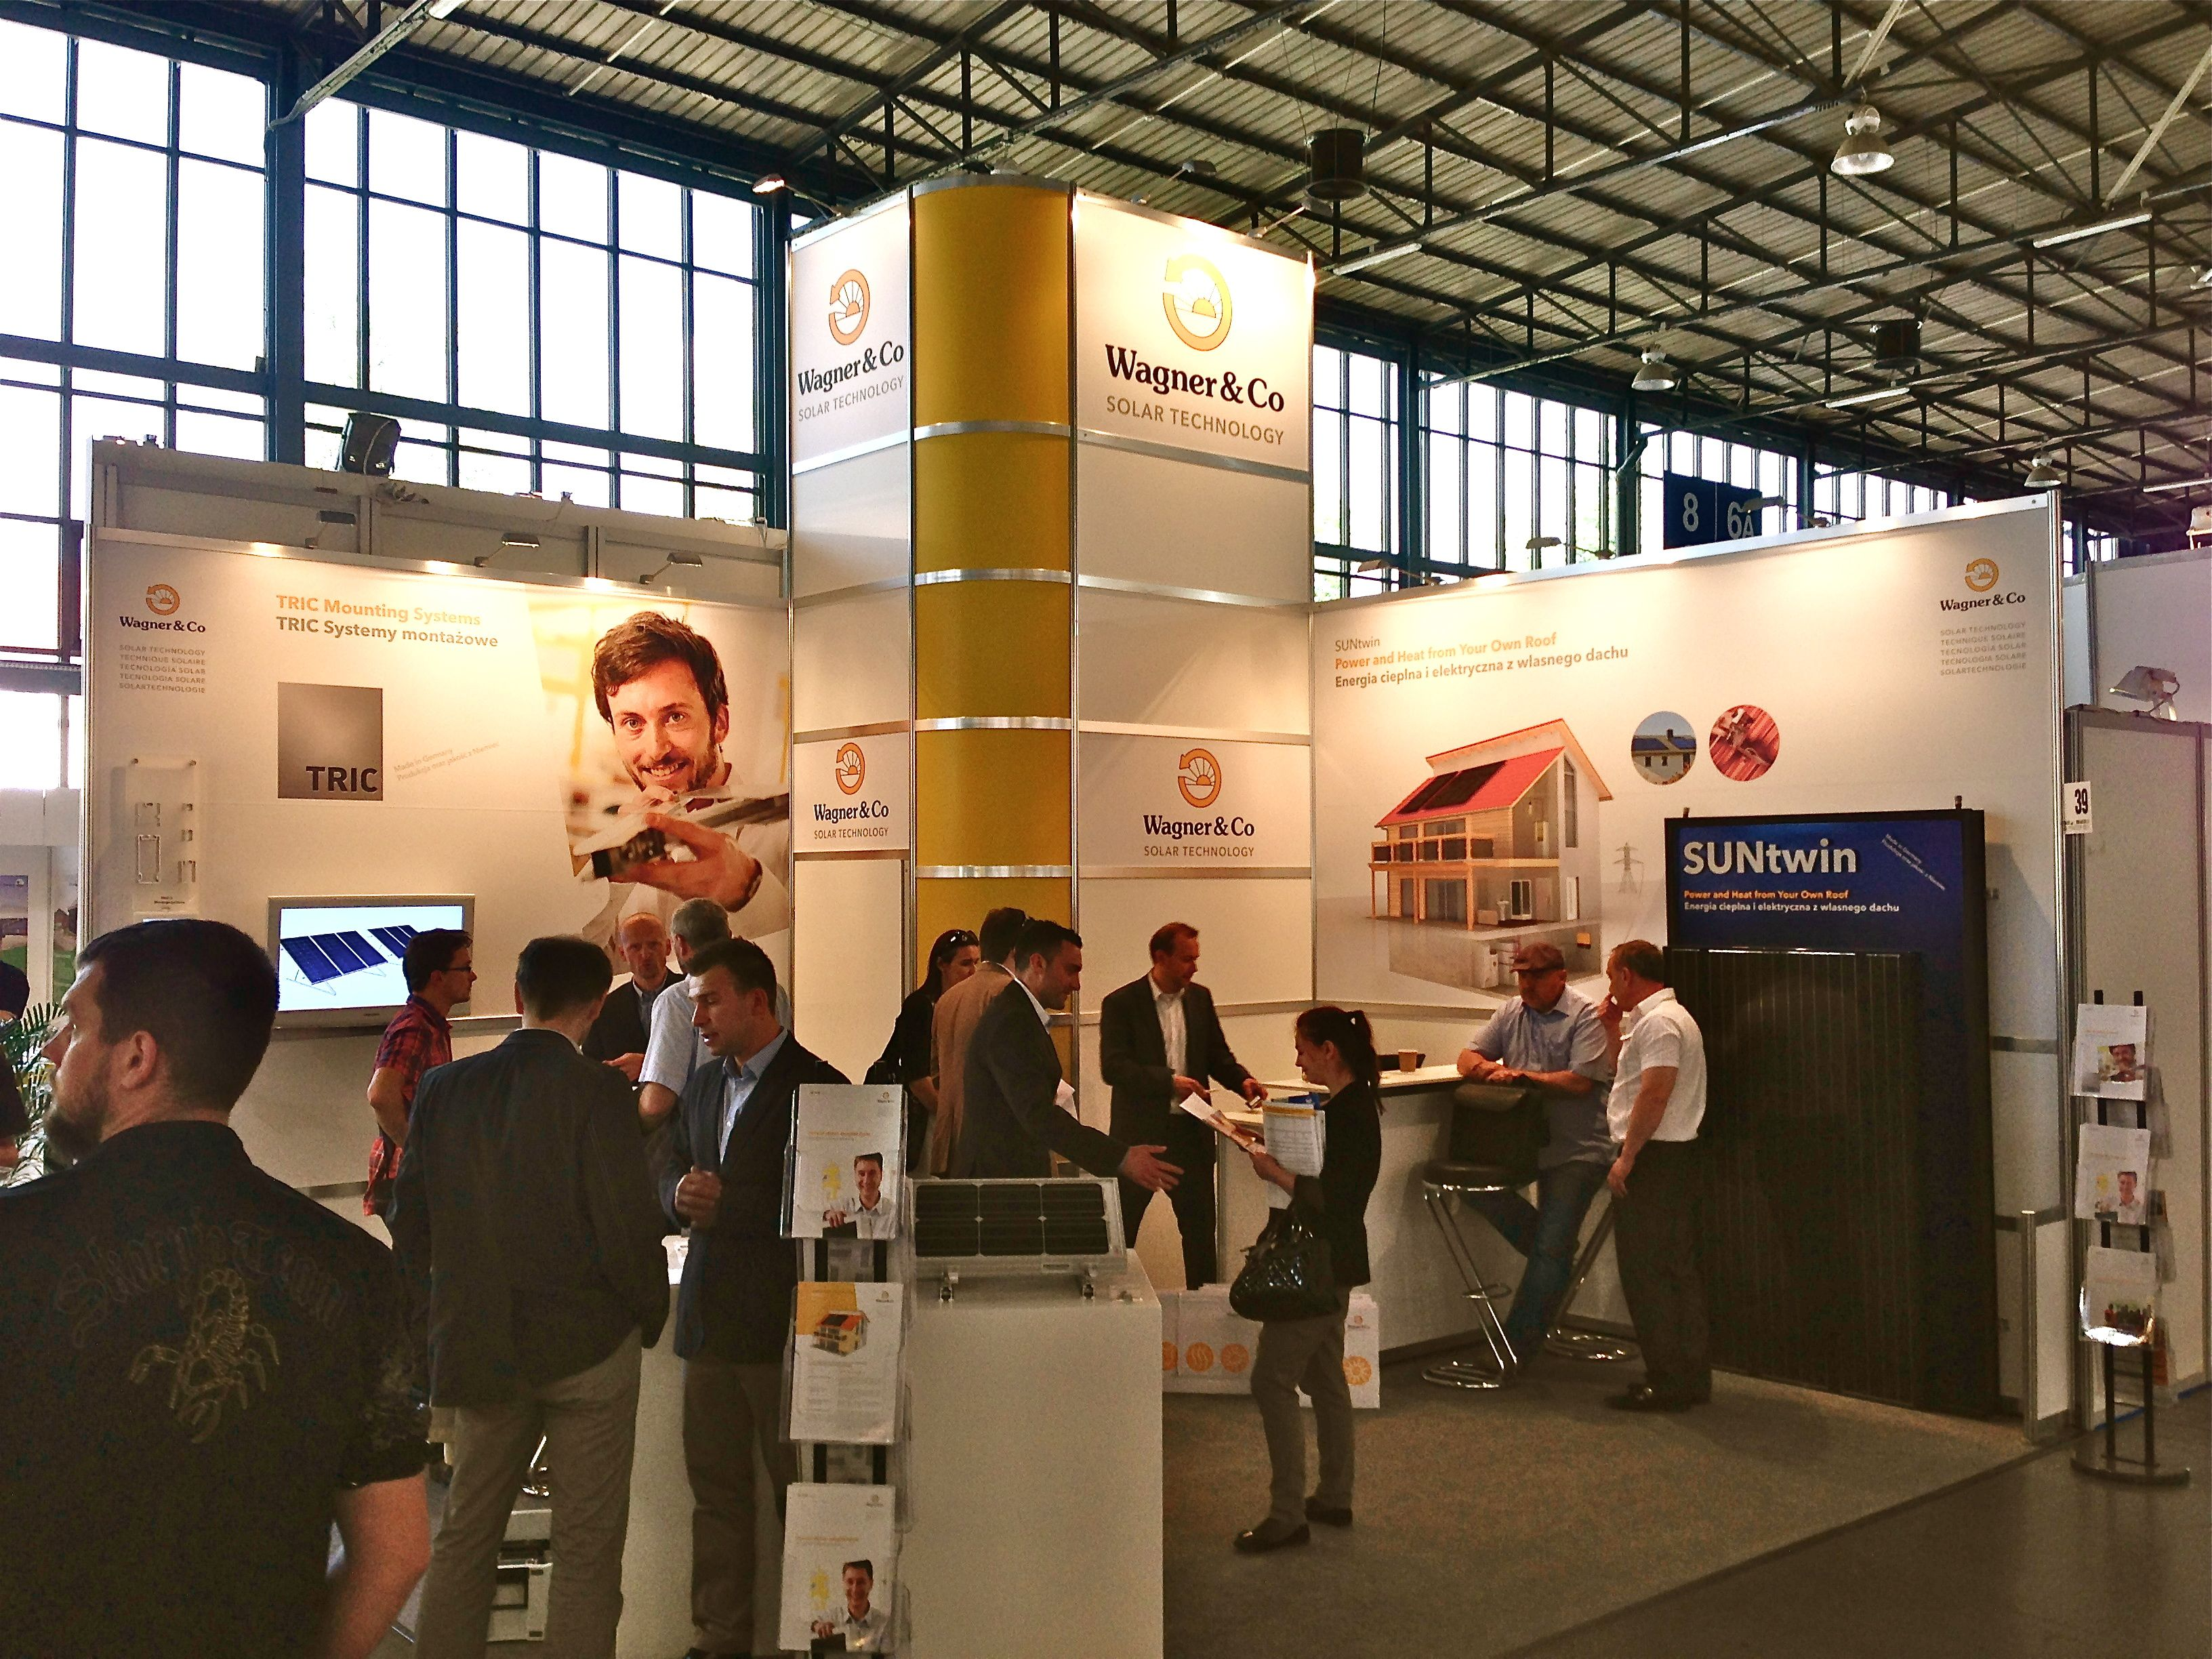 The Wagner & Co and partners booth at the Poznan Greenpower